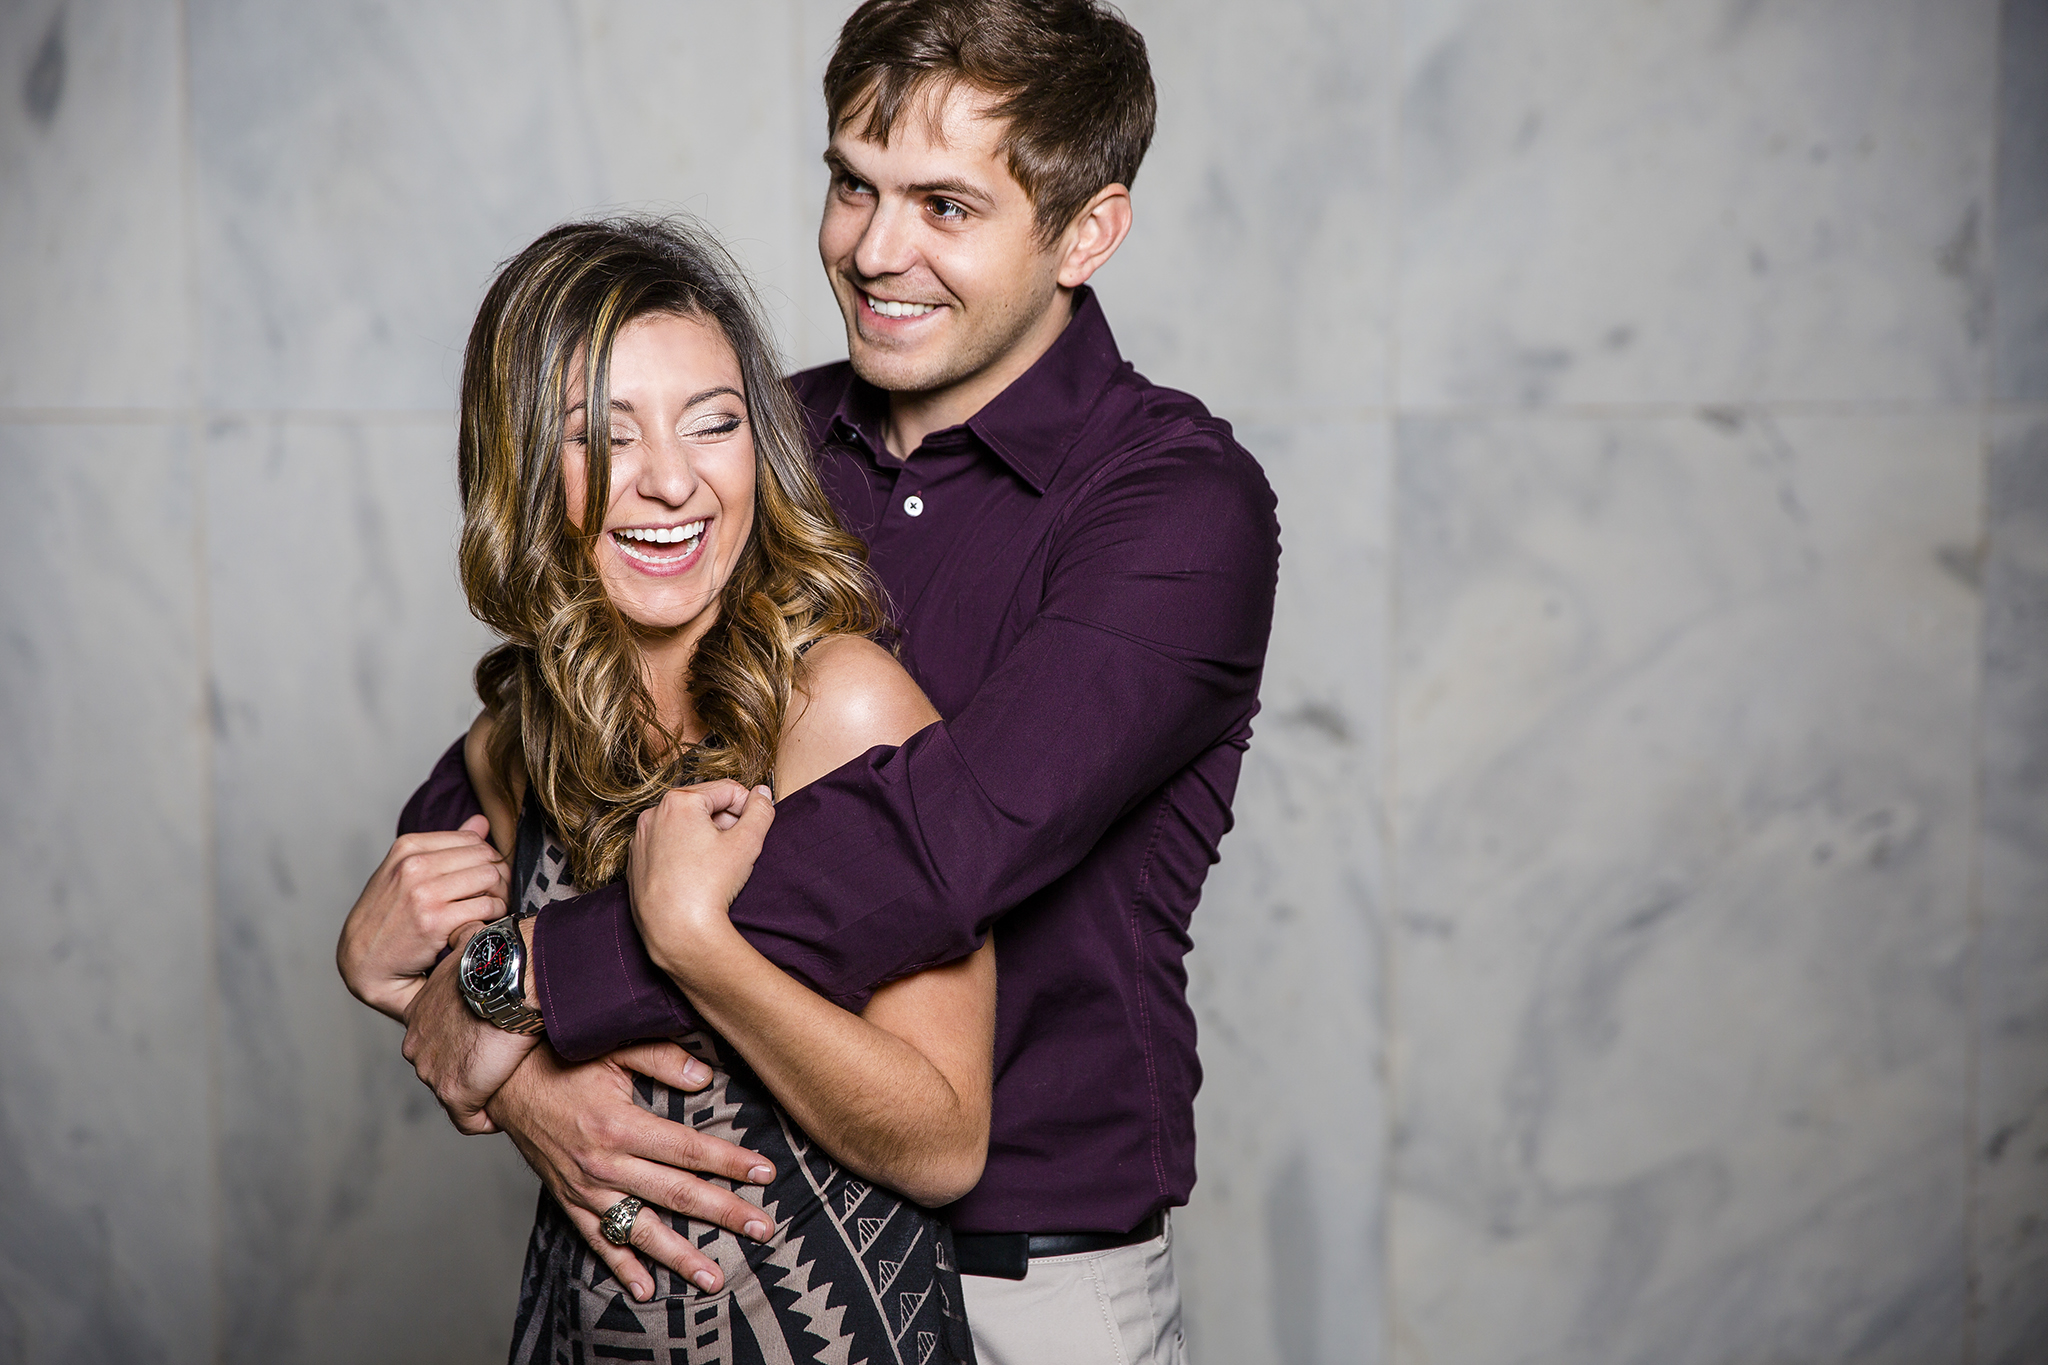 white wall, sweet moments, laughing together, romantic, sweet engagement photography